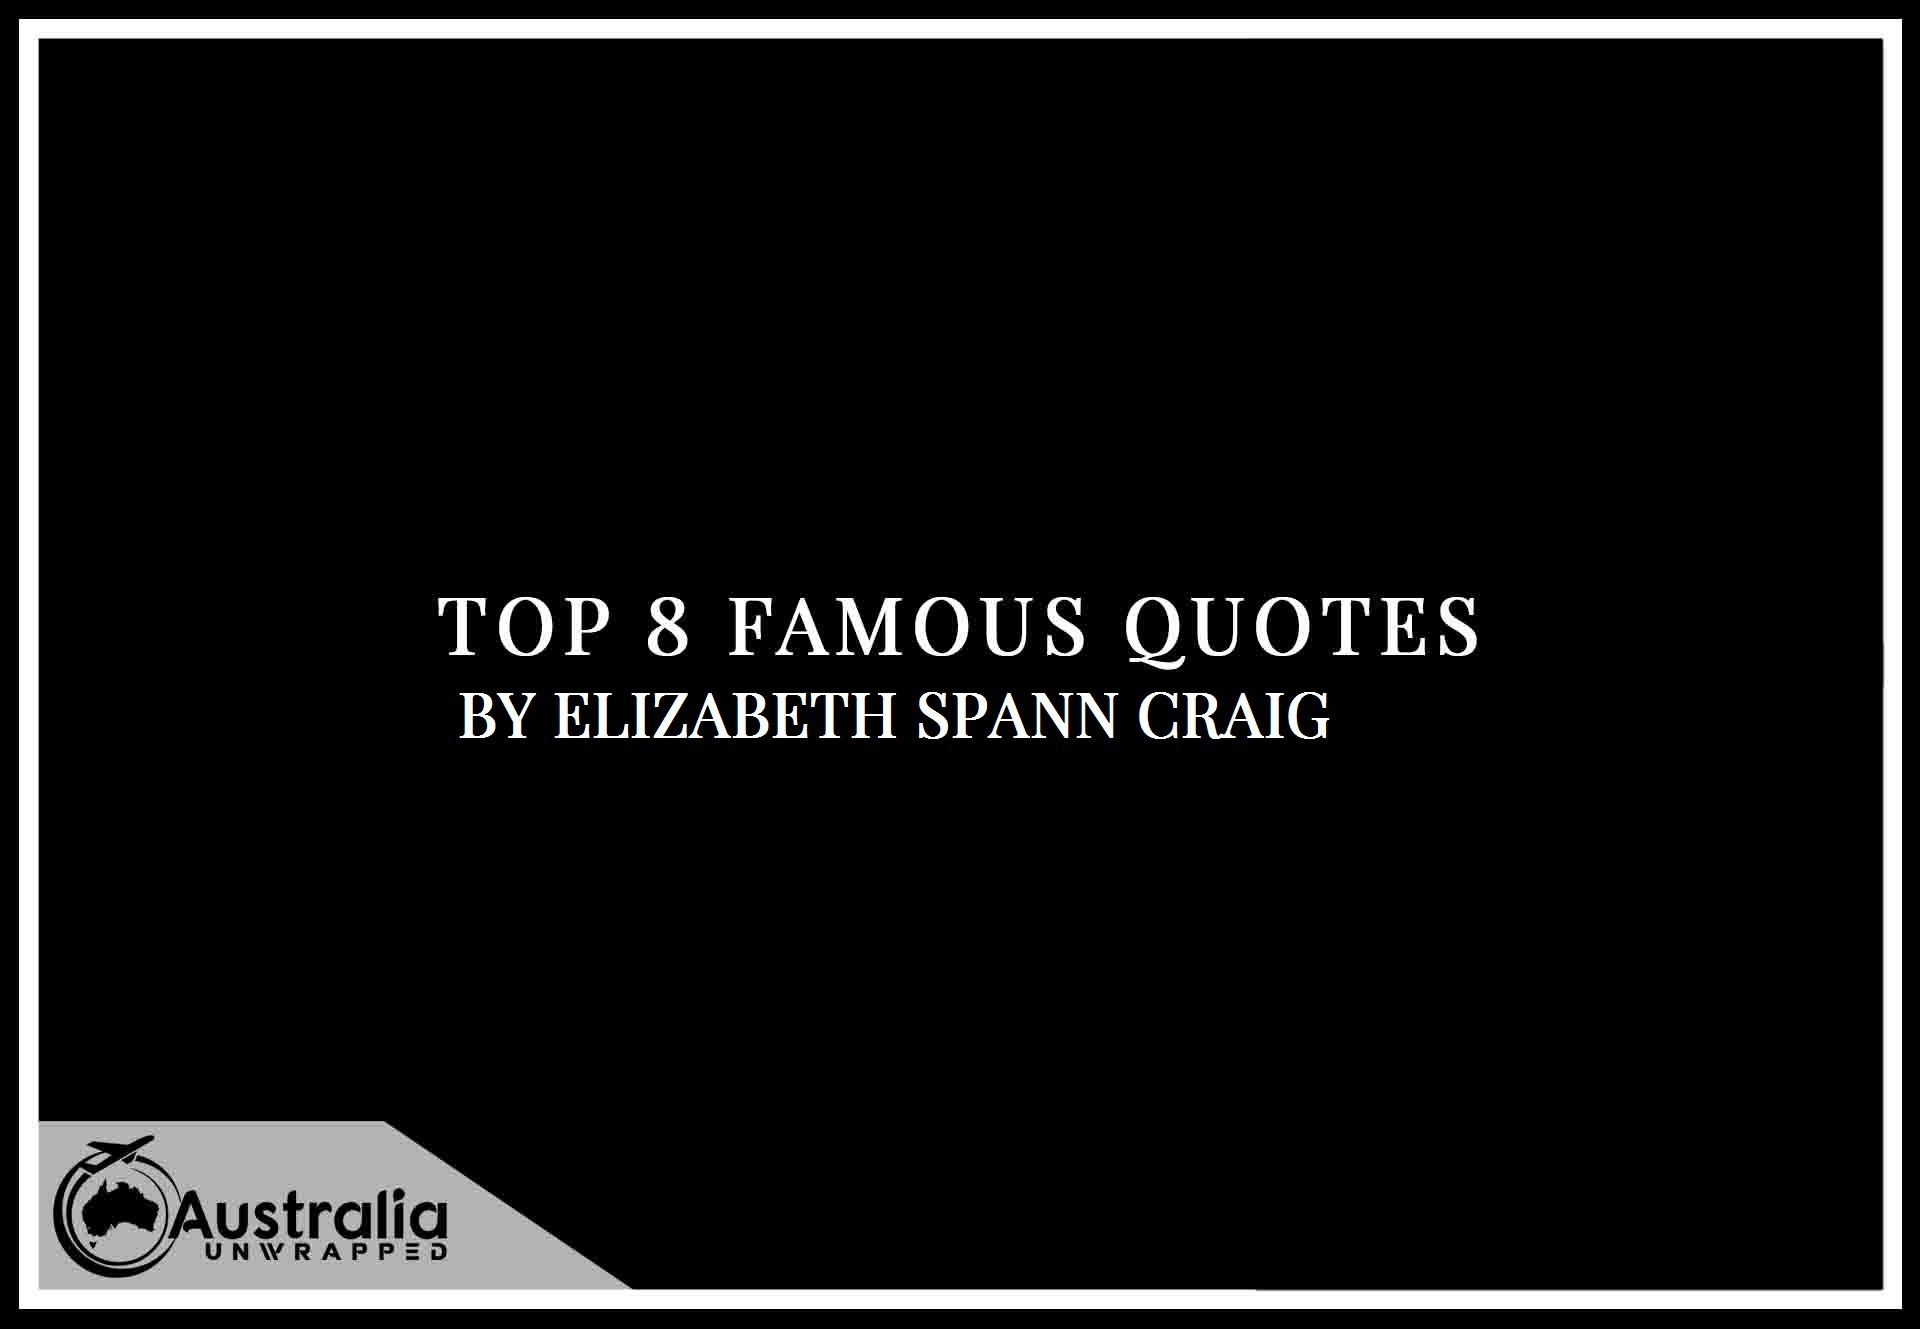 Elizabeth Craig's Top 8 Popular and Famous Quotes